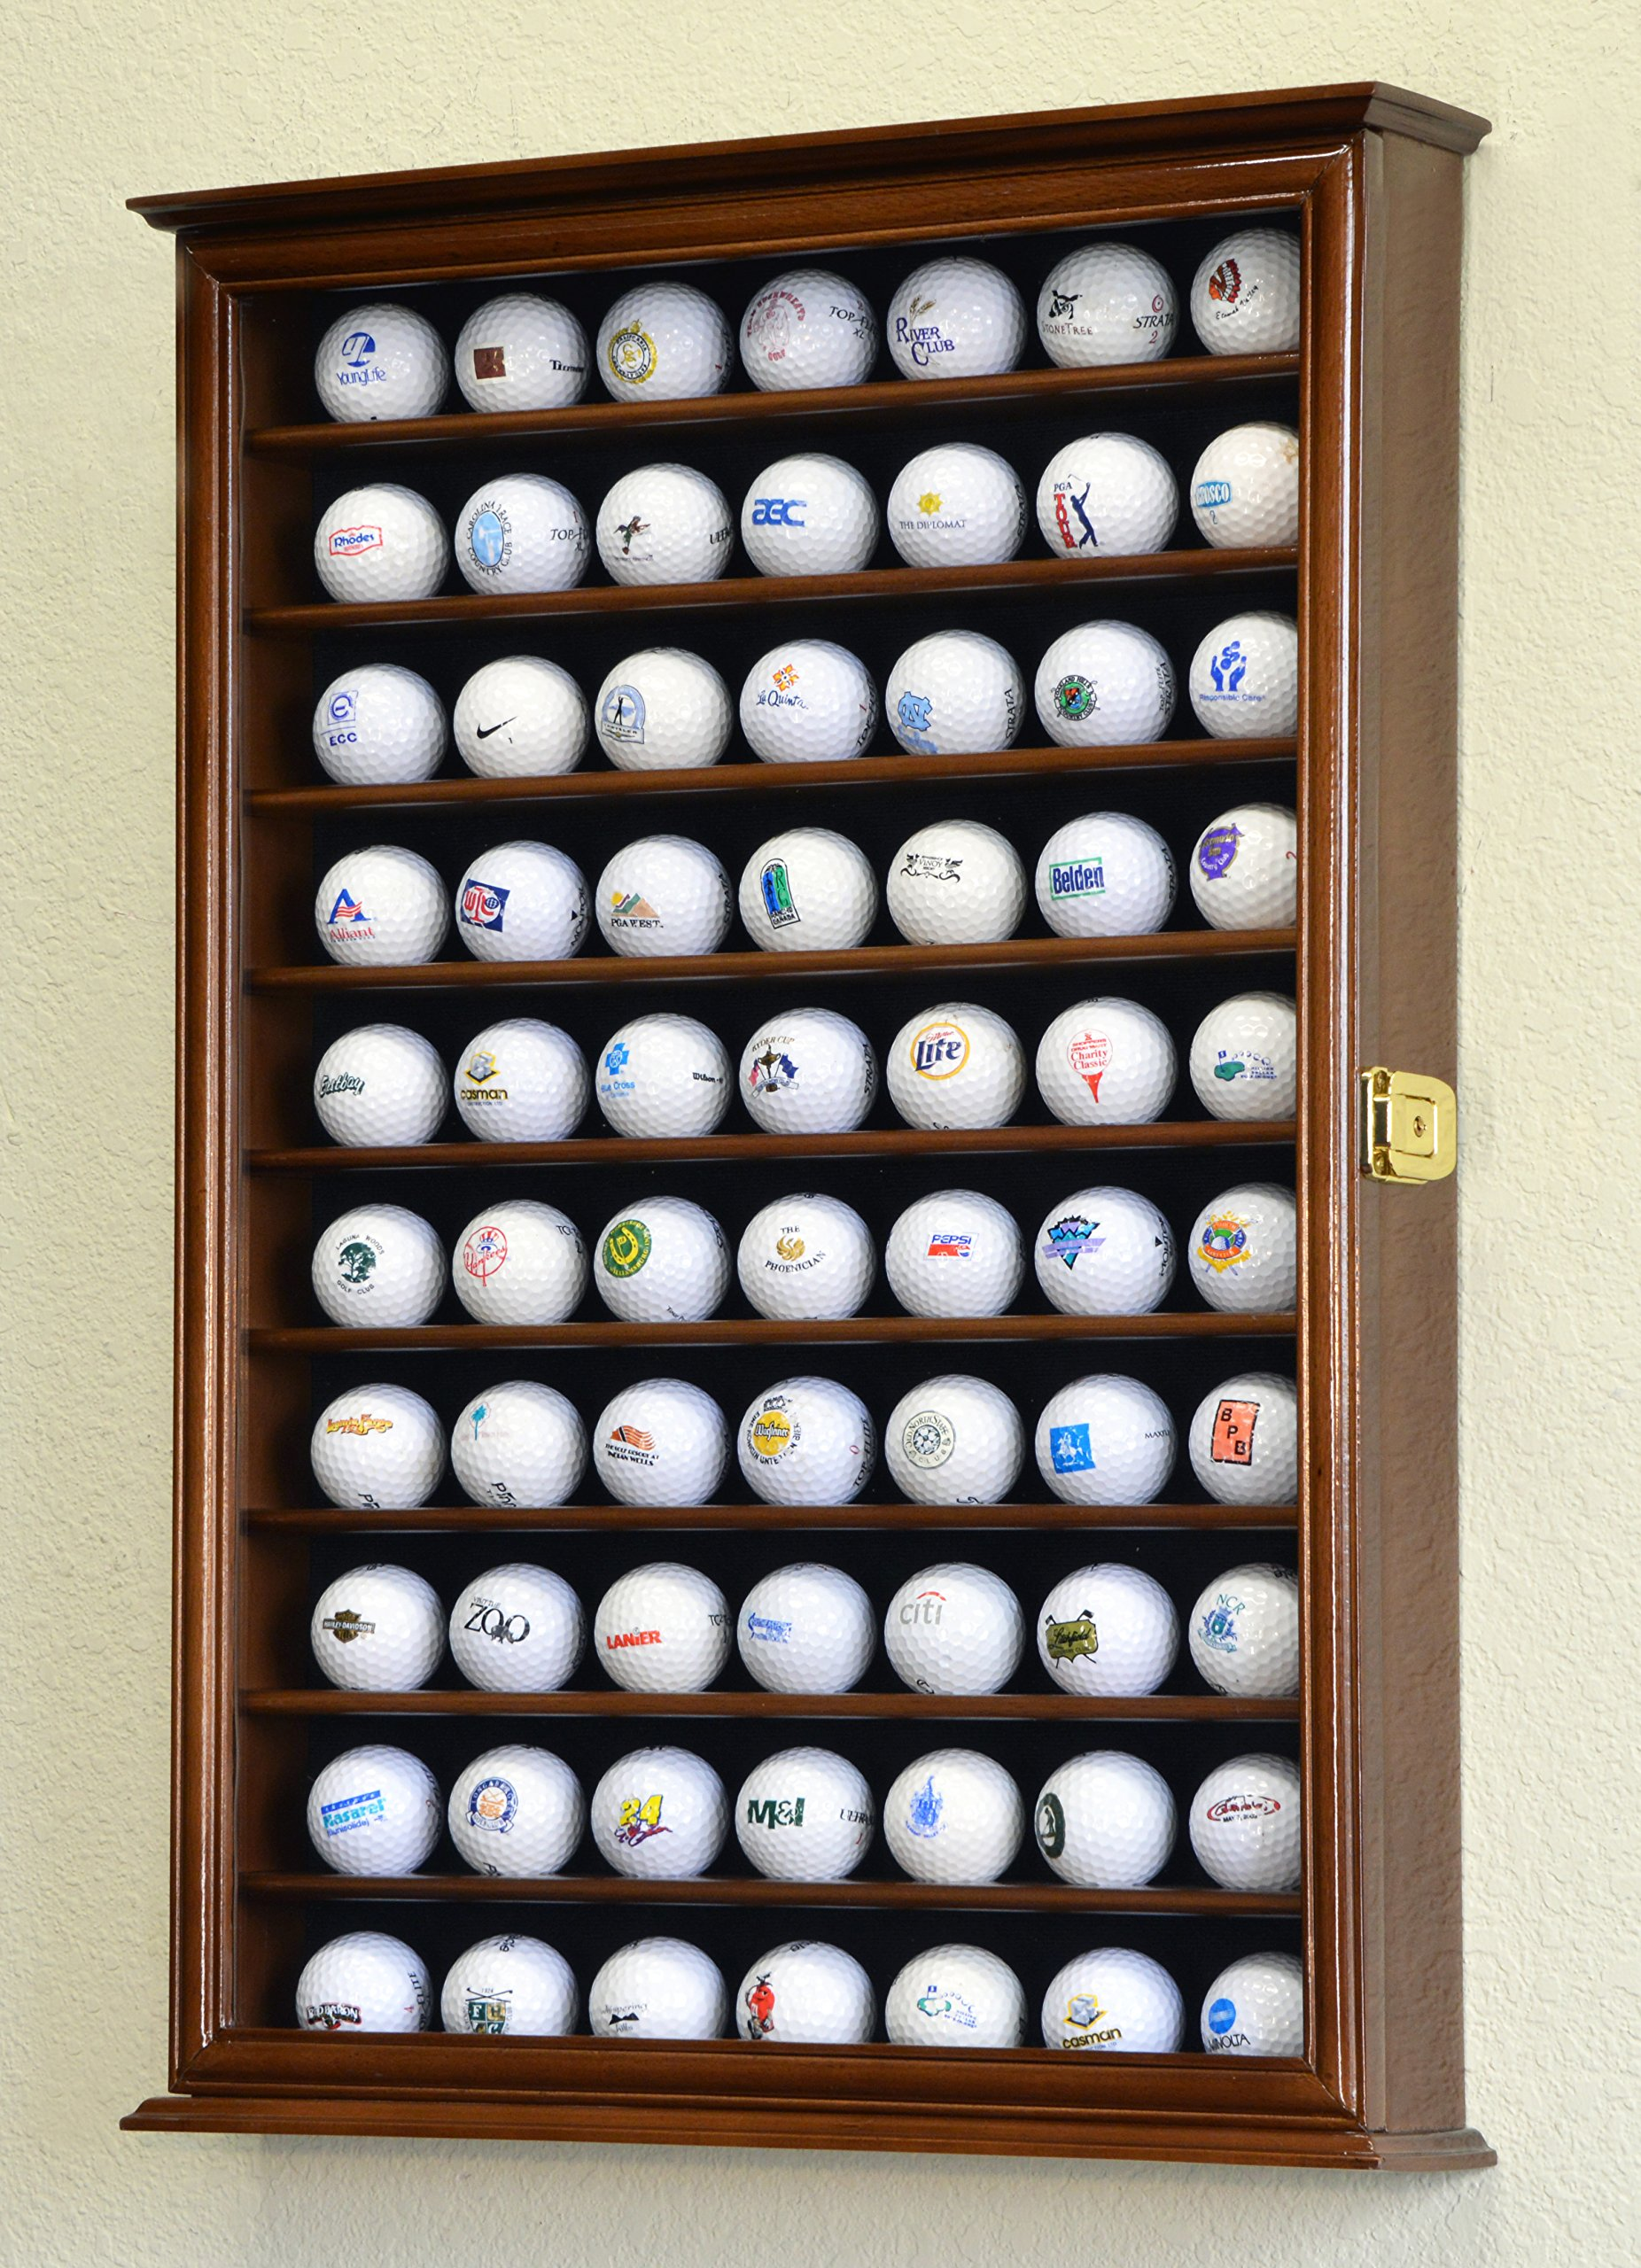 70 Golf Ball Display Case Cabinet Holder Wall Rack w/ UV Protection -Walnut by sfDisplay (Image #1)